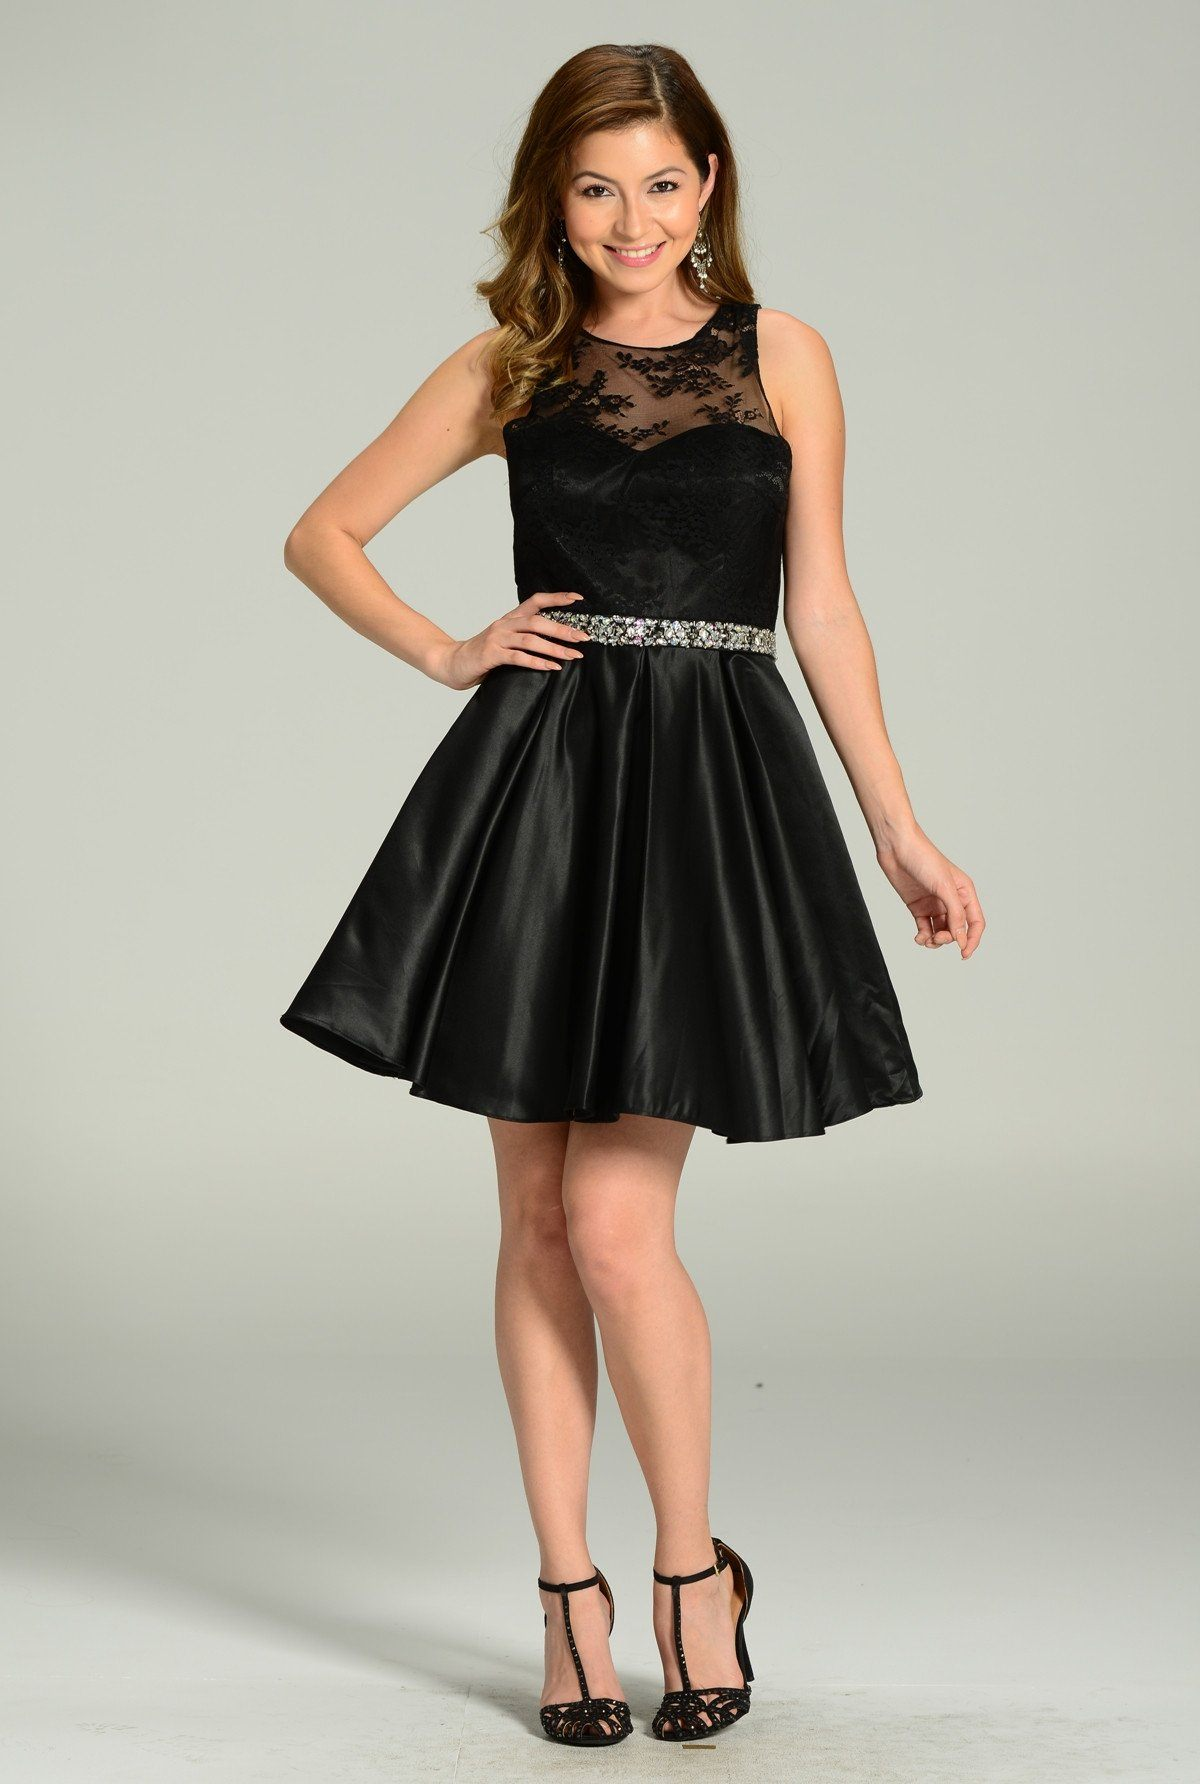 Sexy little black homecoming dress 101-7214 - Simply Fab Dress